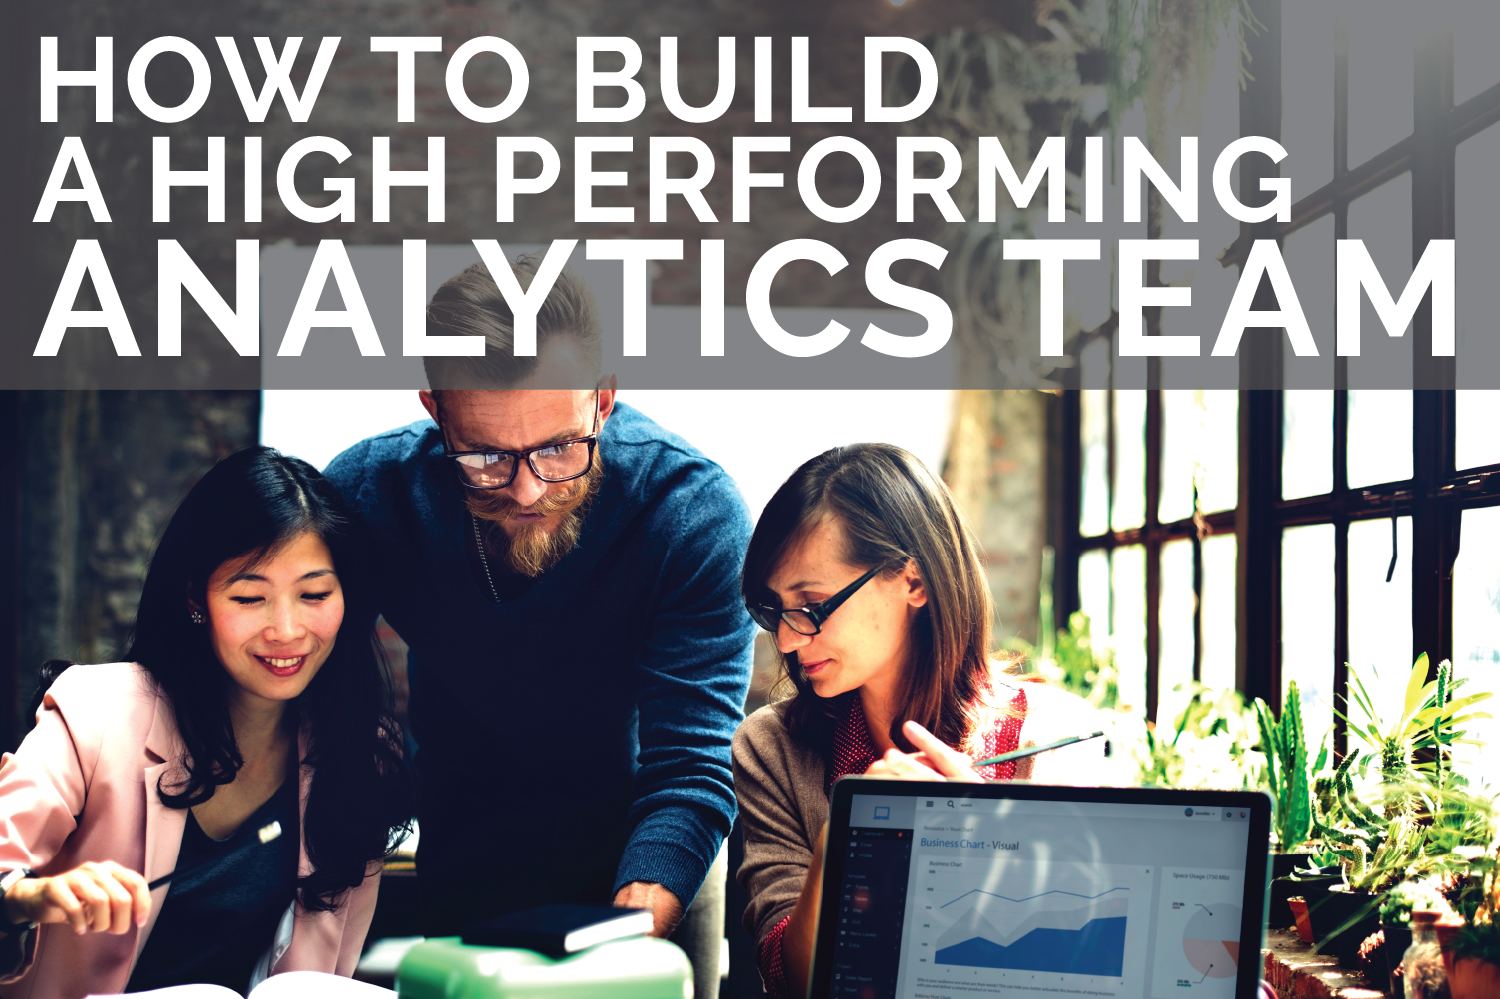 How to Build a High Performing Analytics Team?